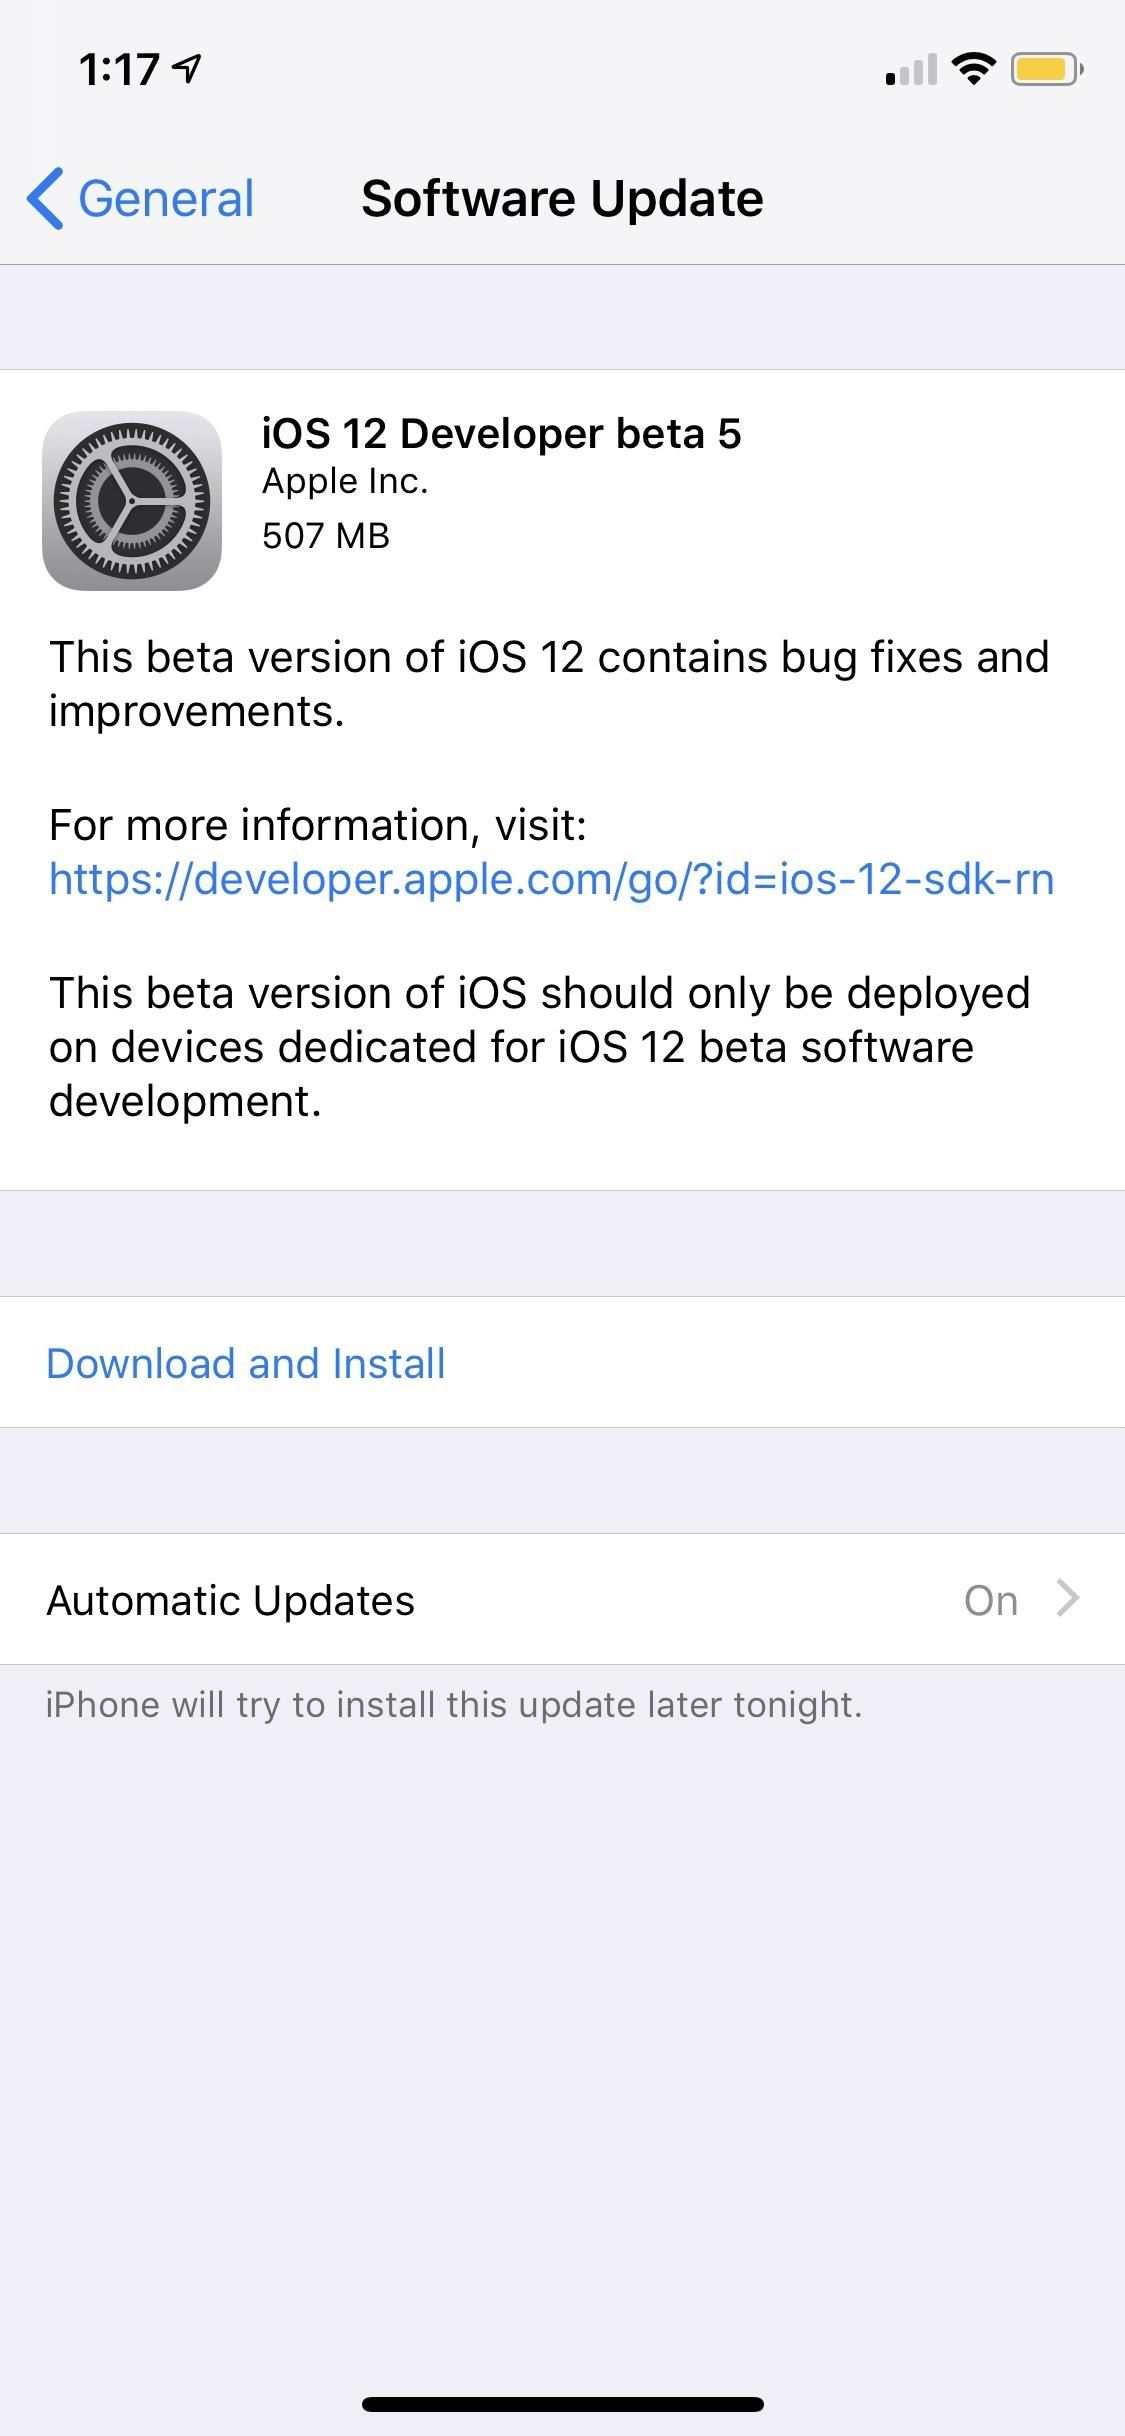 iOS 12 Beta 5 for iPhones Released to Apple Developers